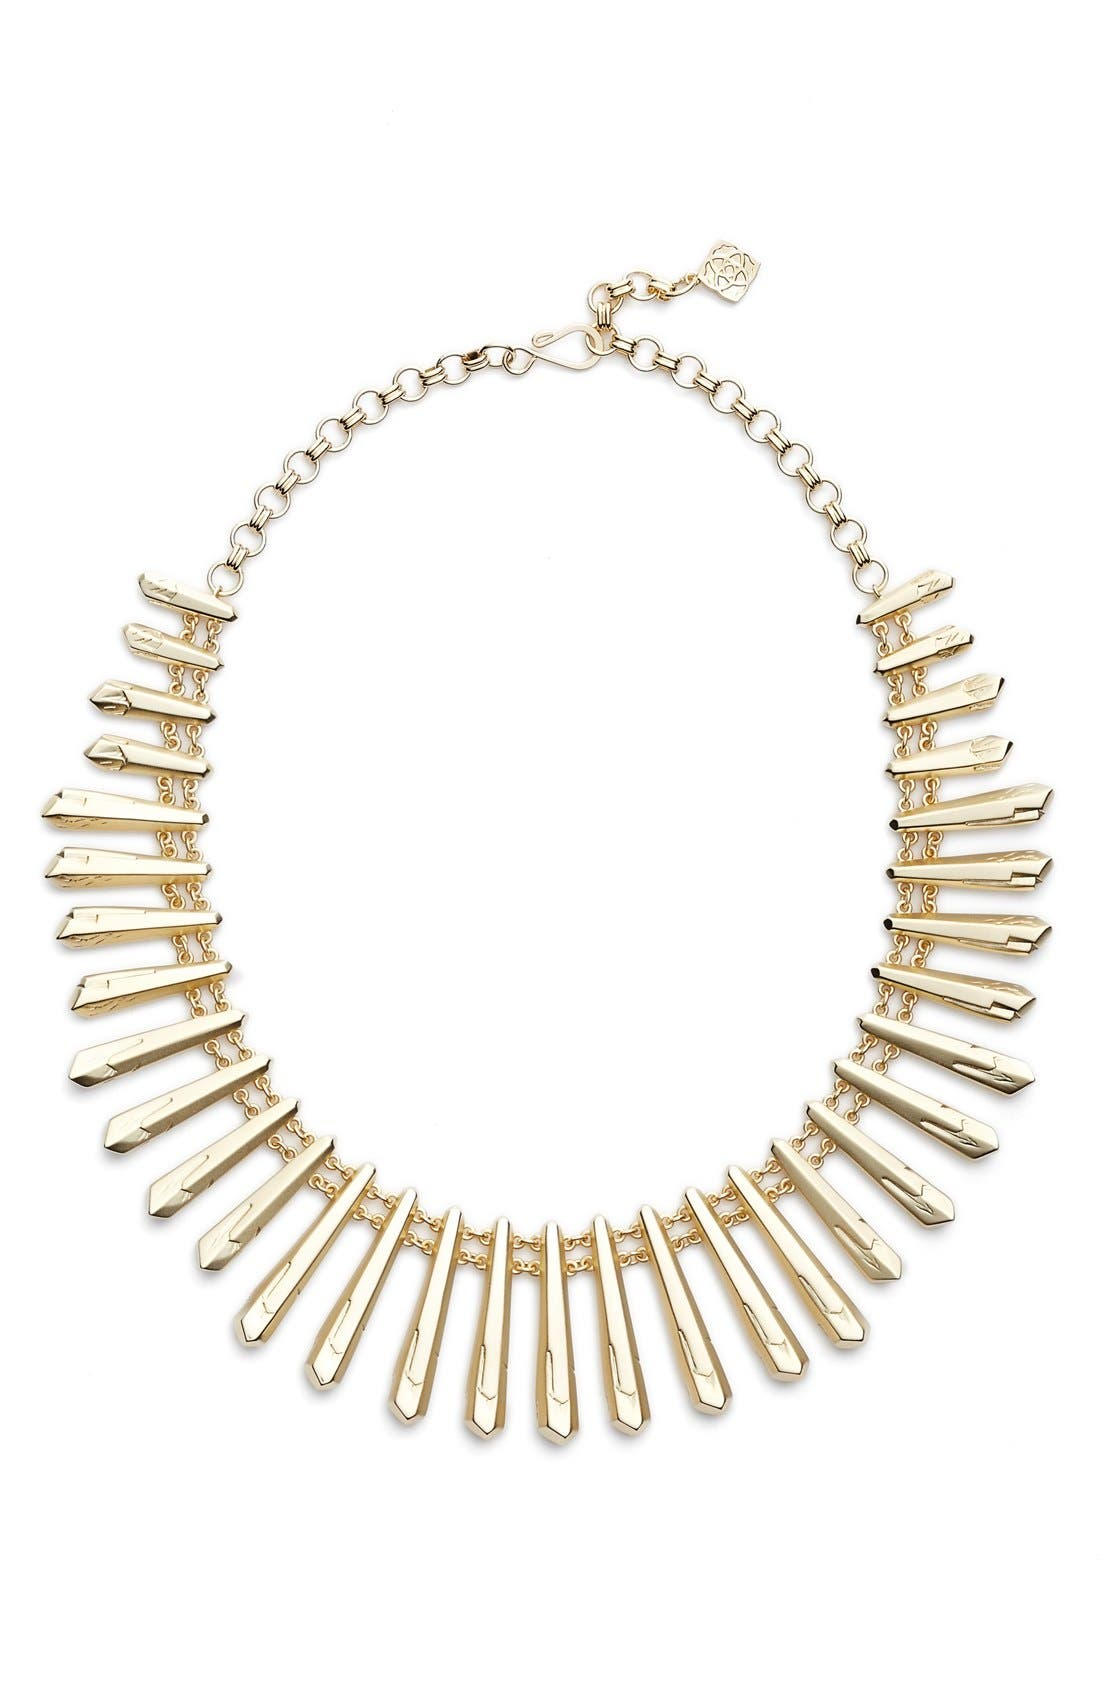 Main Image - Kendra Scott 'Jill' Collar Necklace